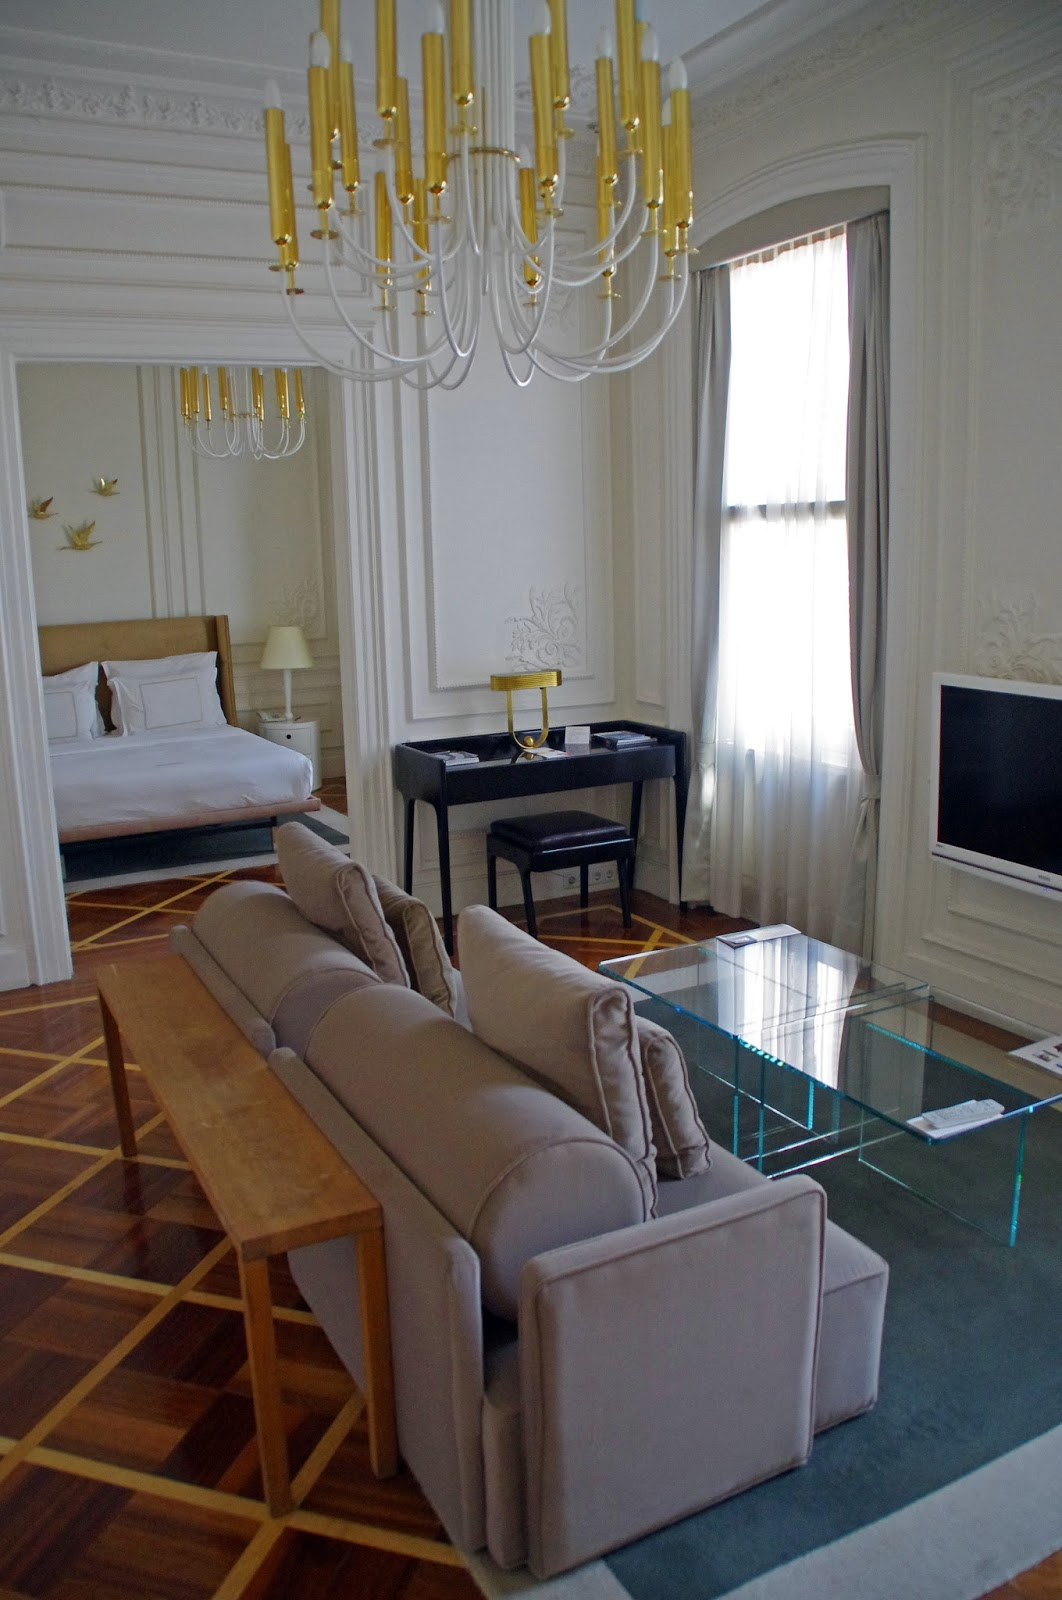 House Hotel Galatasaray Room and Living Room